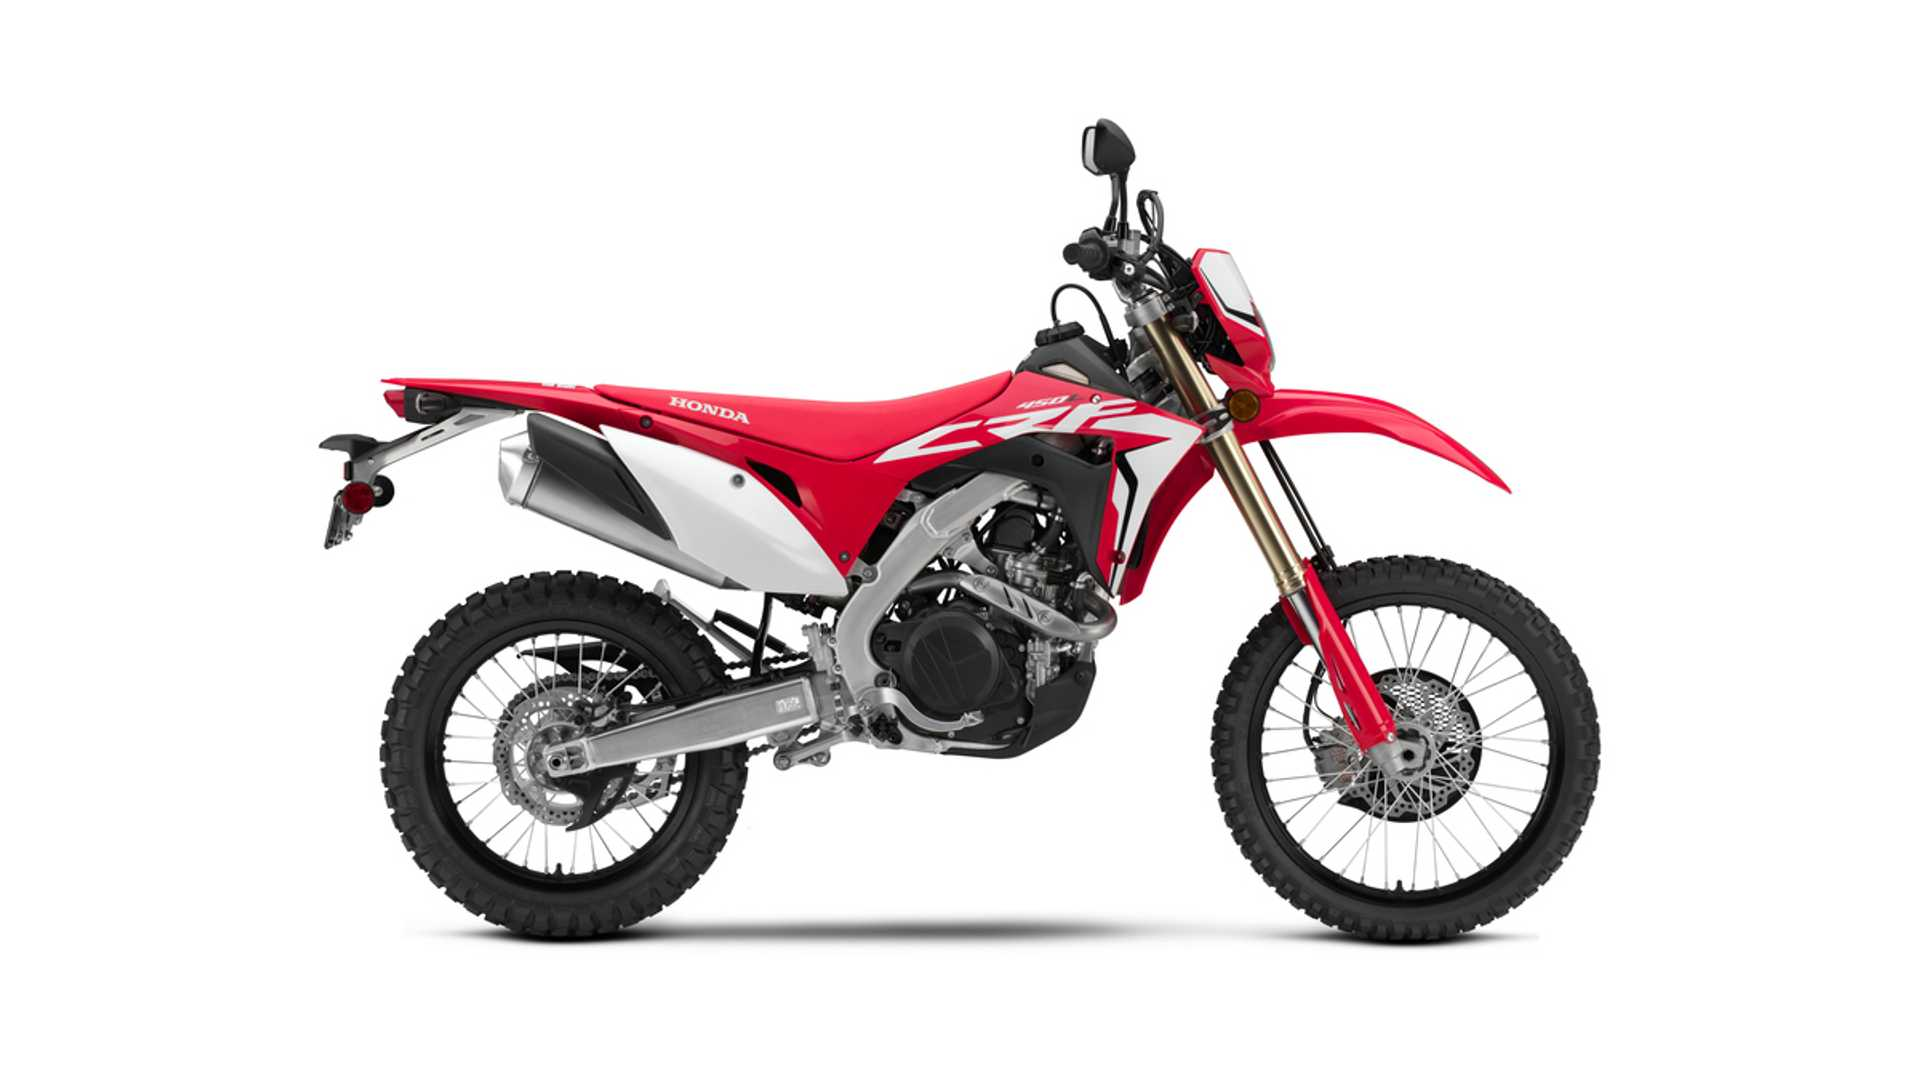 Recall: The Honda CRF450L Could Lose Its Horn